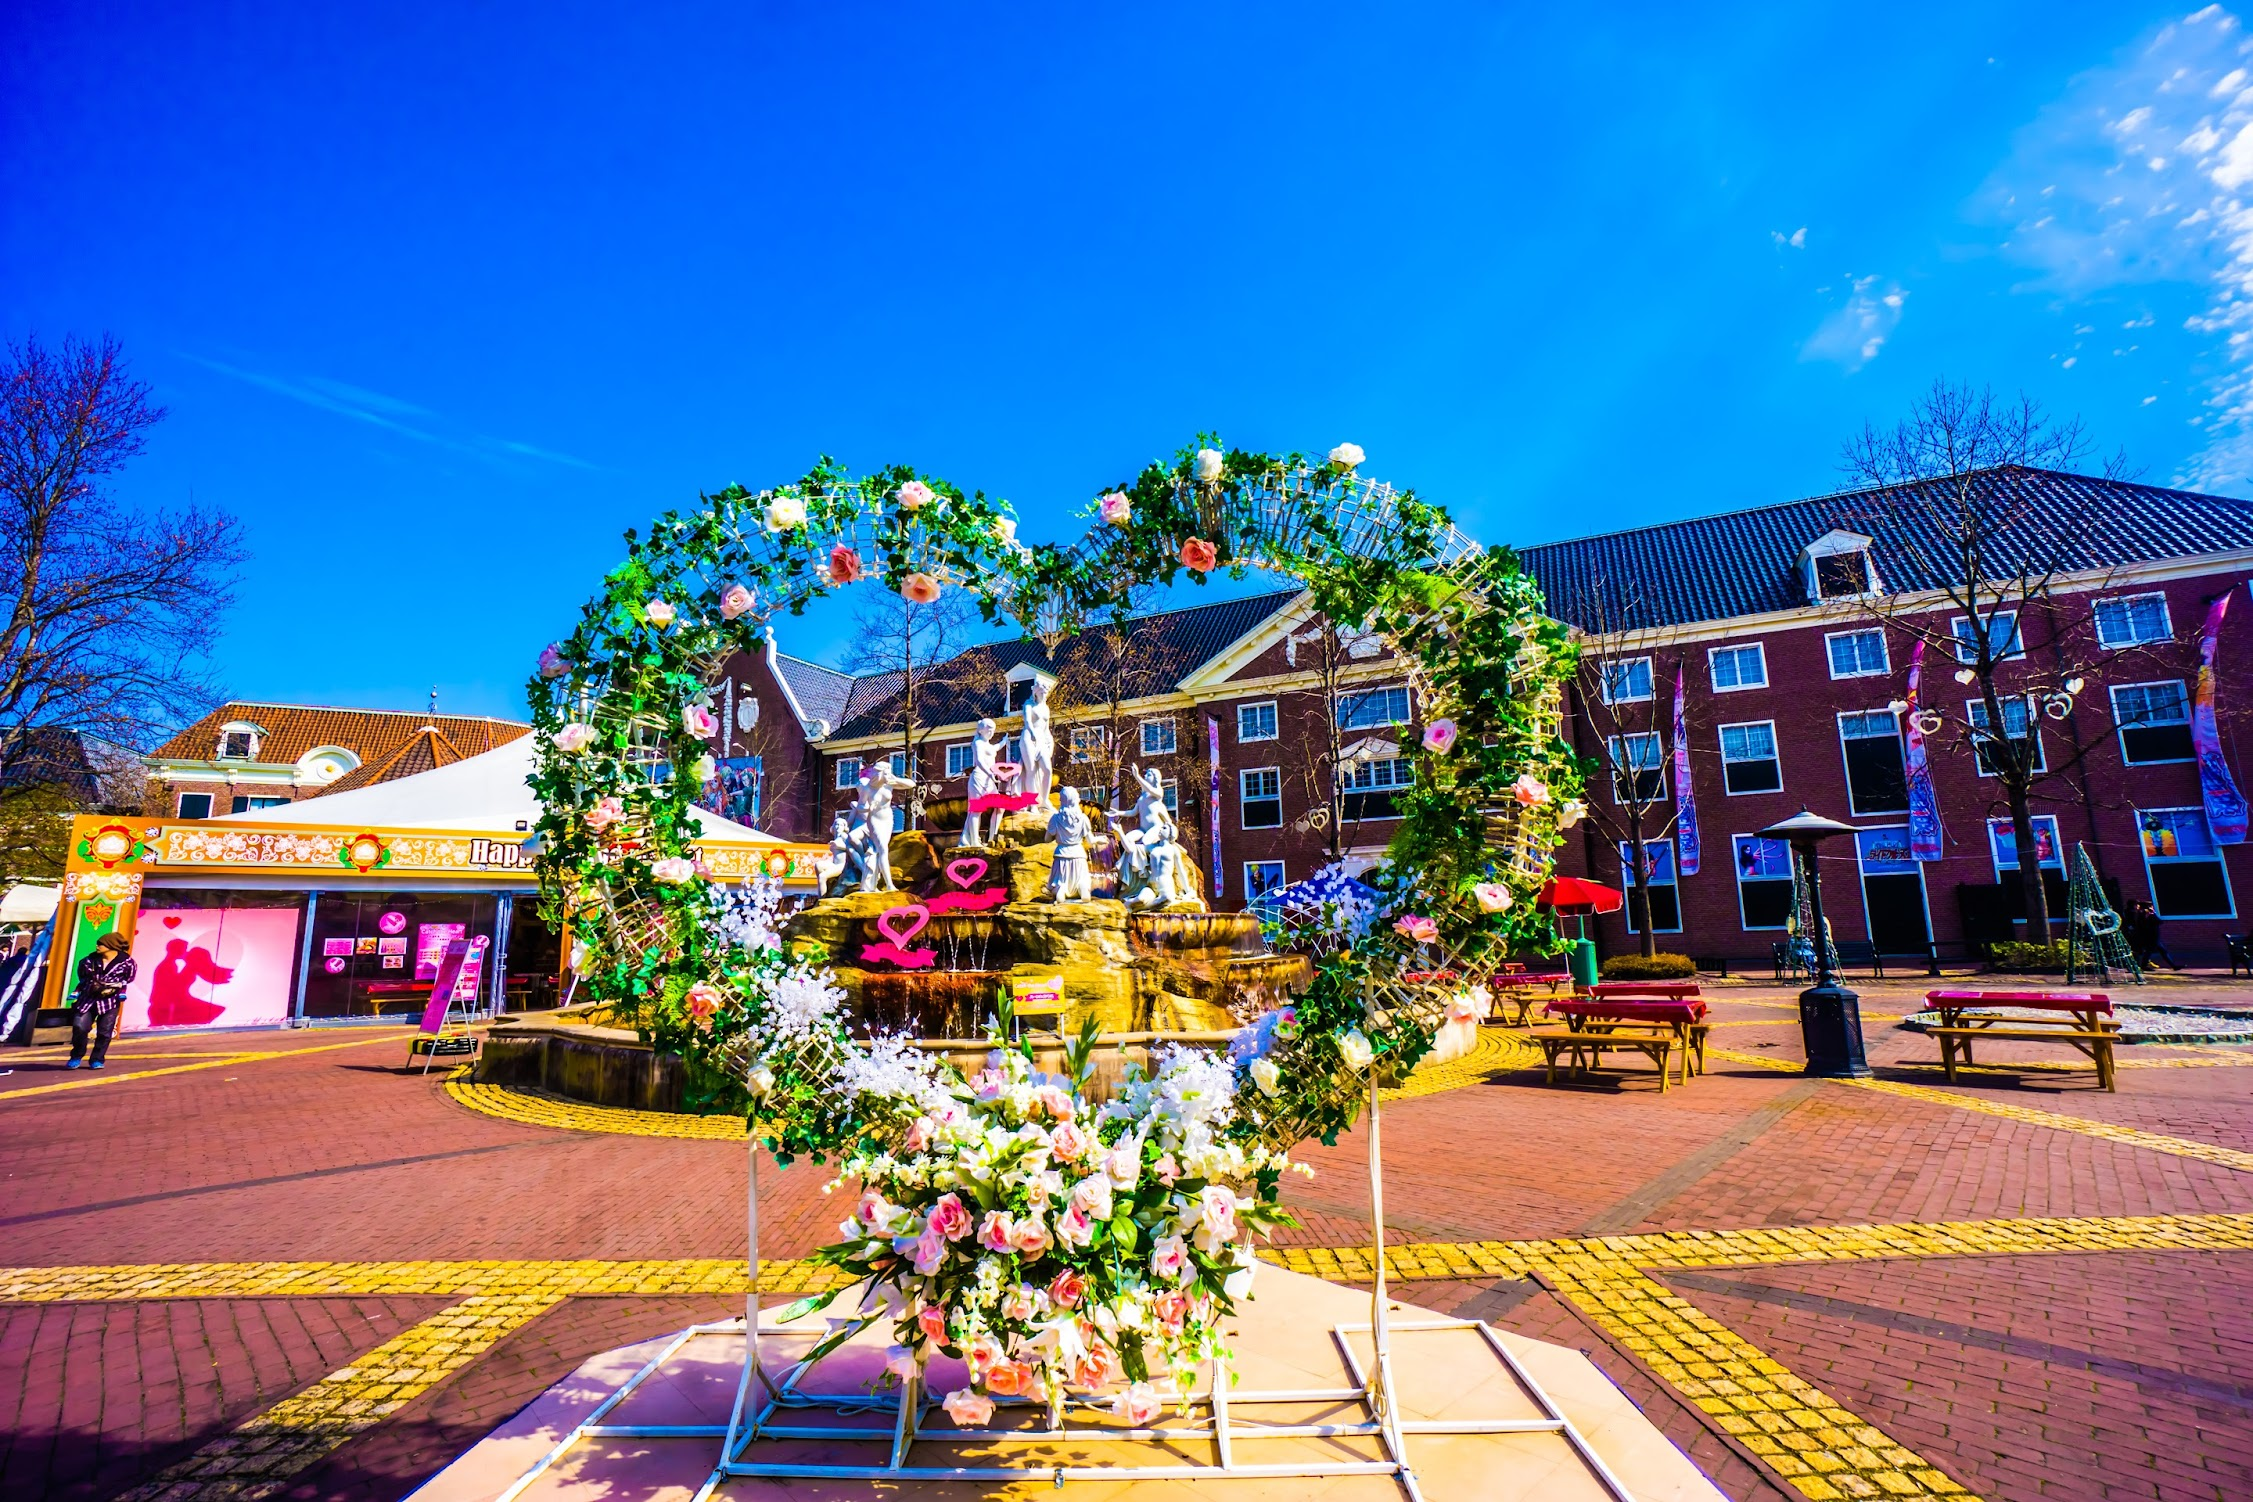 Huis Ten Bosch Heart square